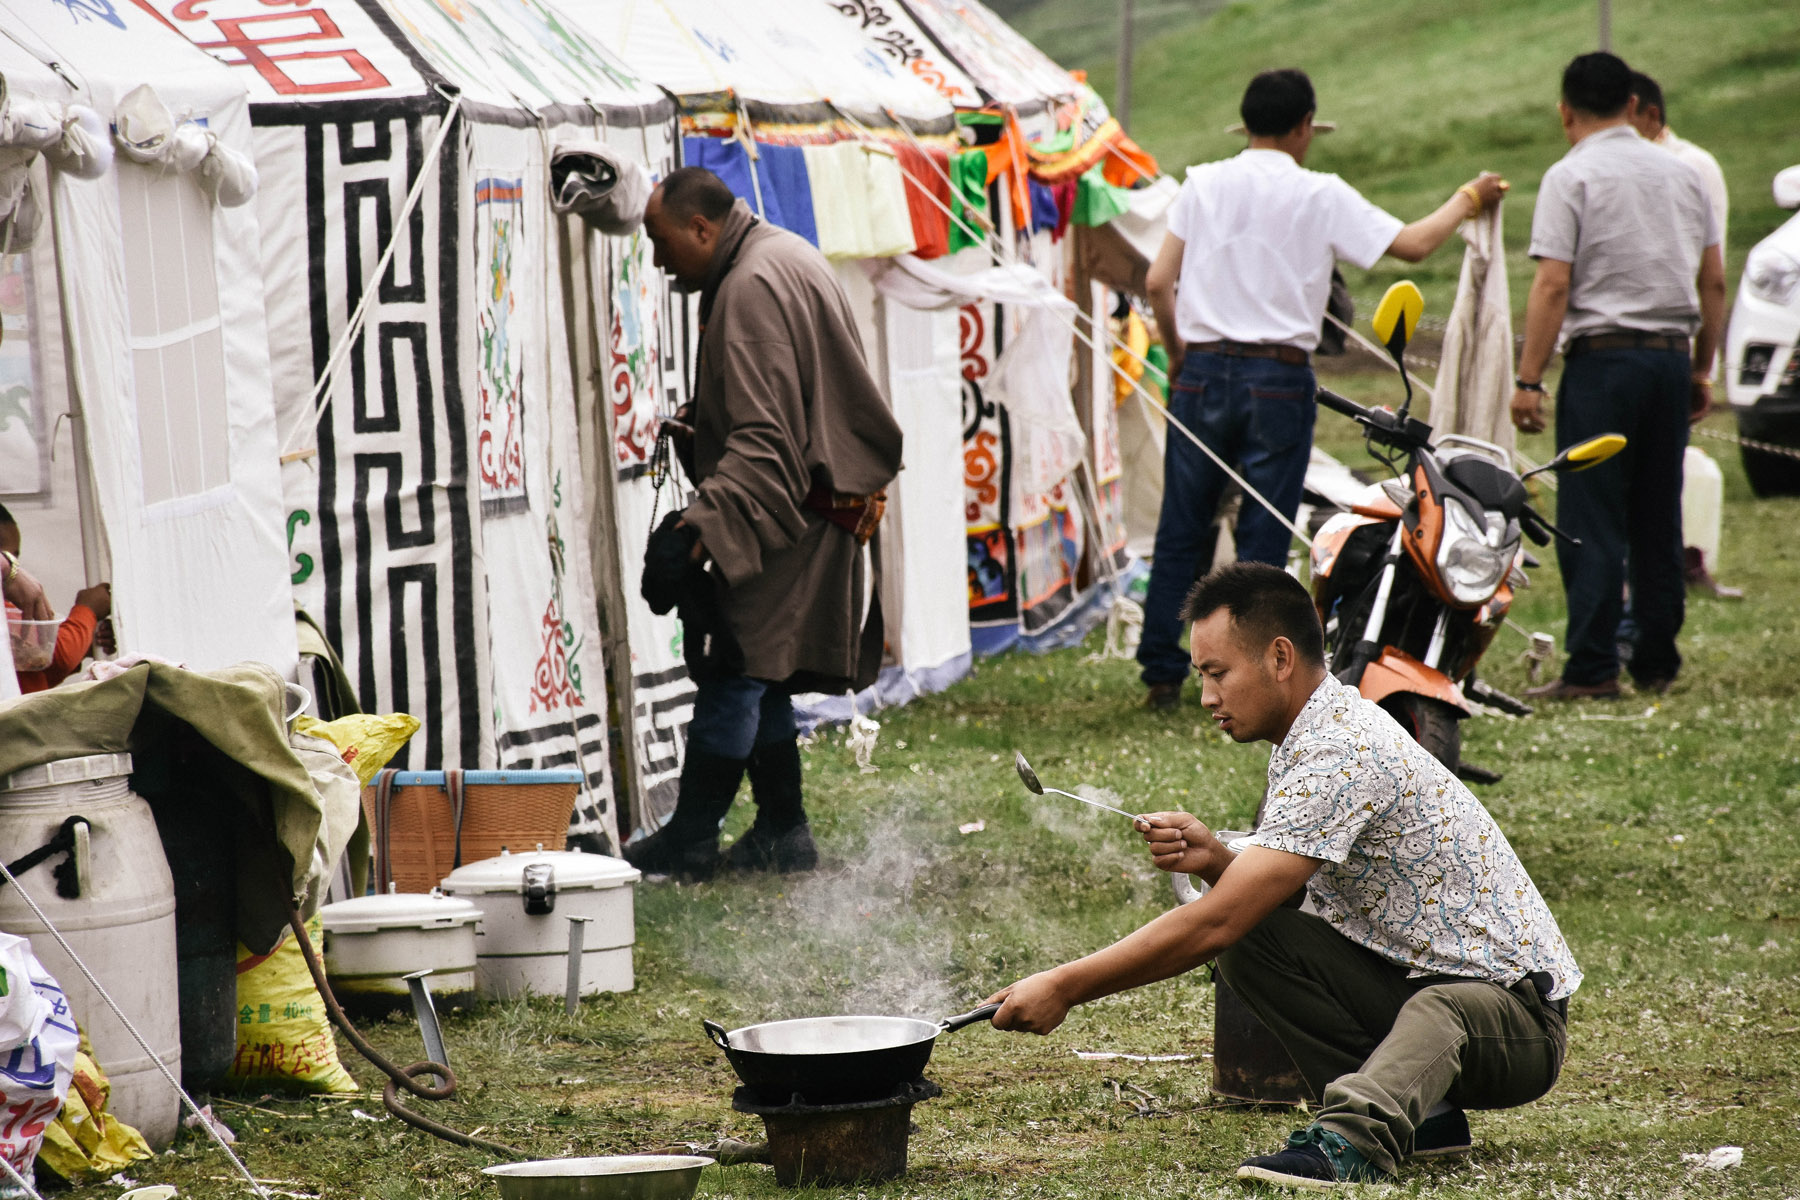 man-cooking-at-a-festival-in-tagong_27855054181_o